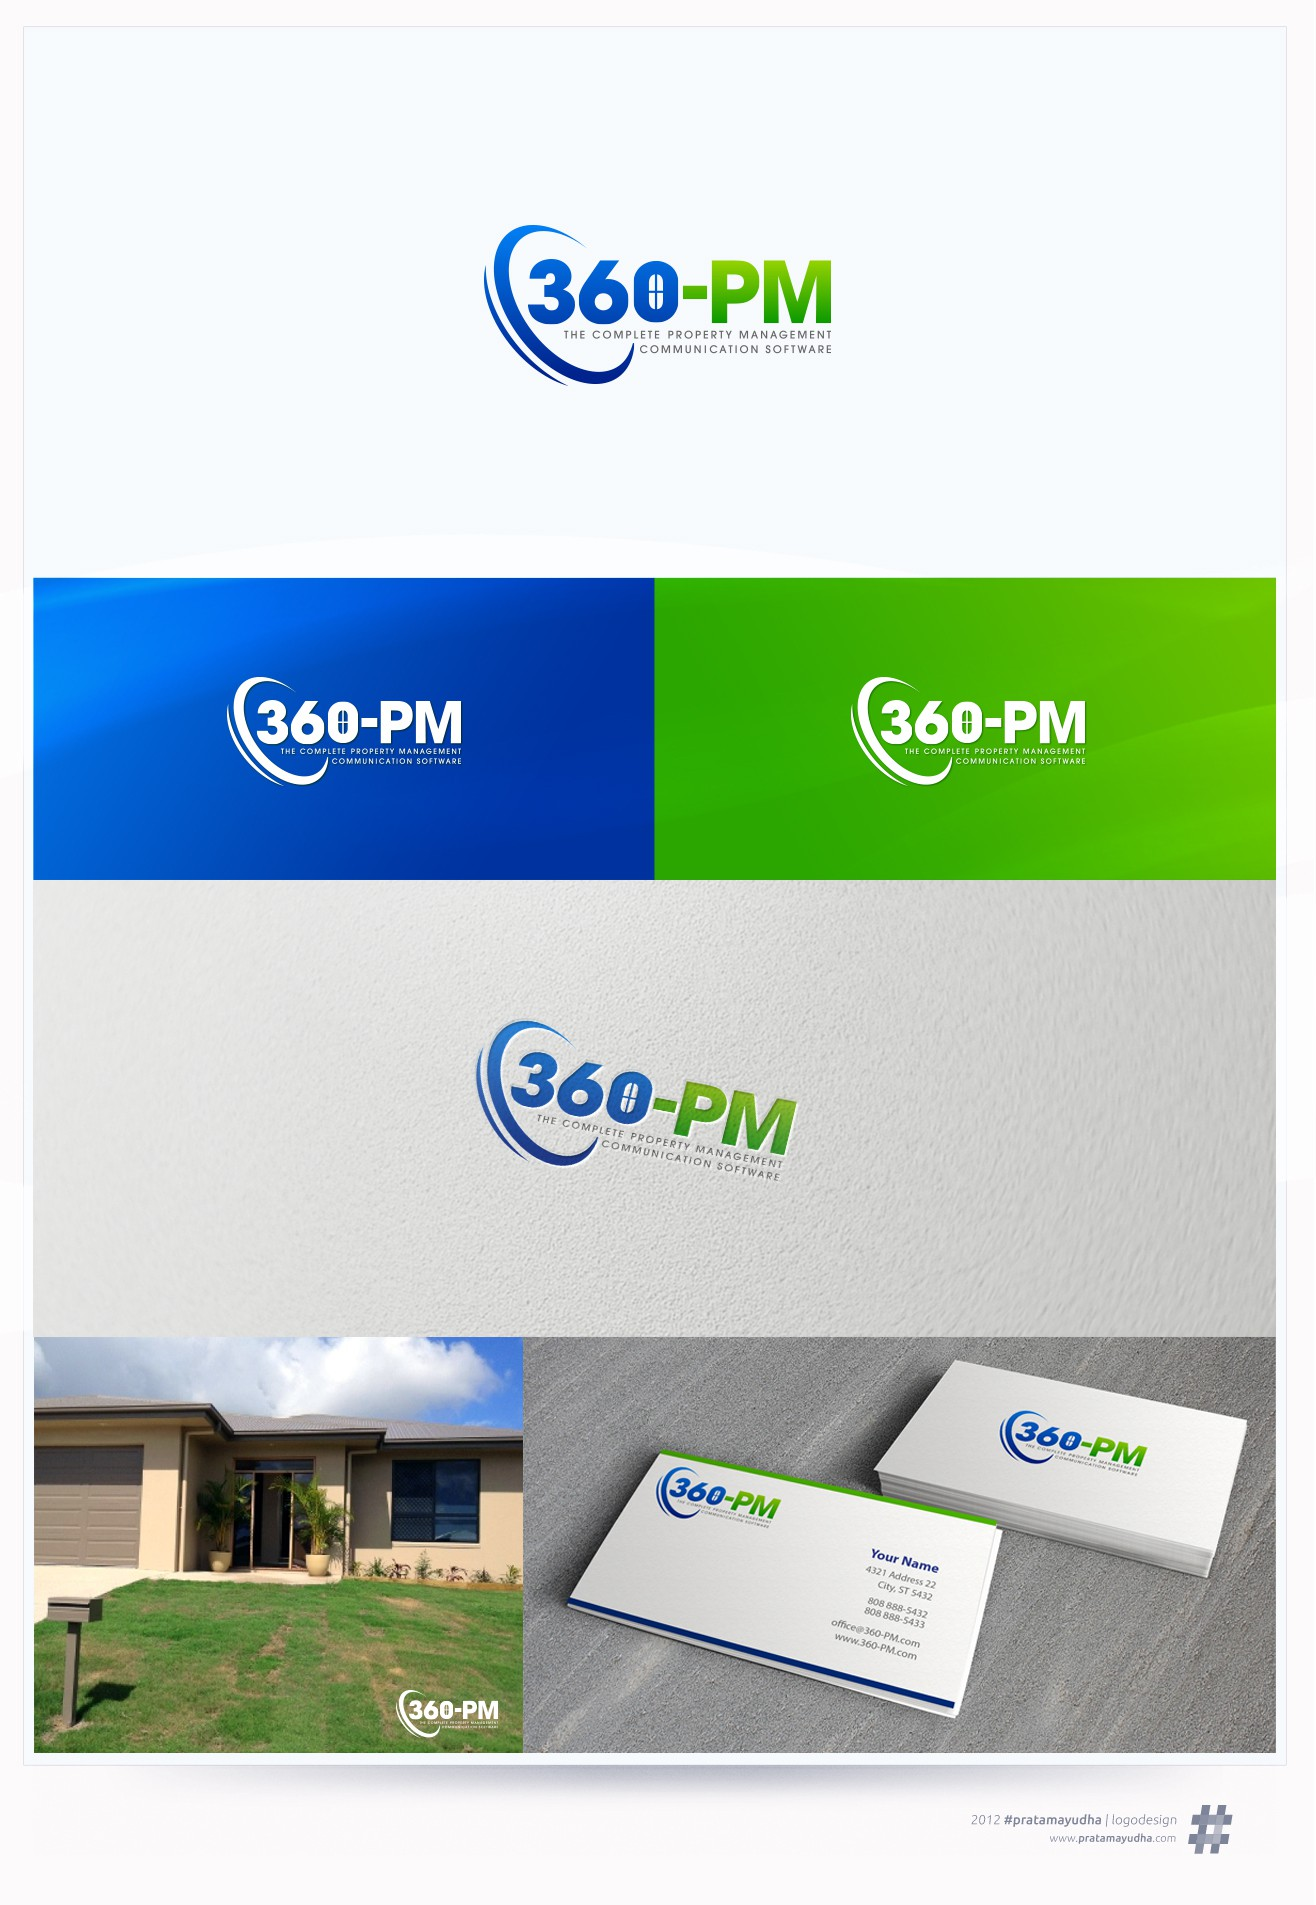 Create the next logo for 360-PM